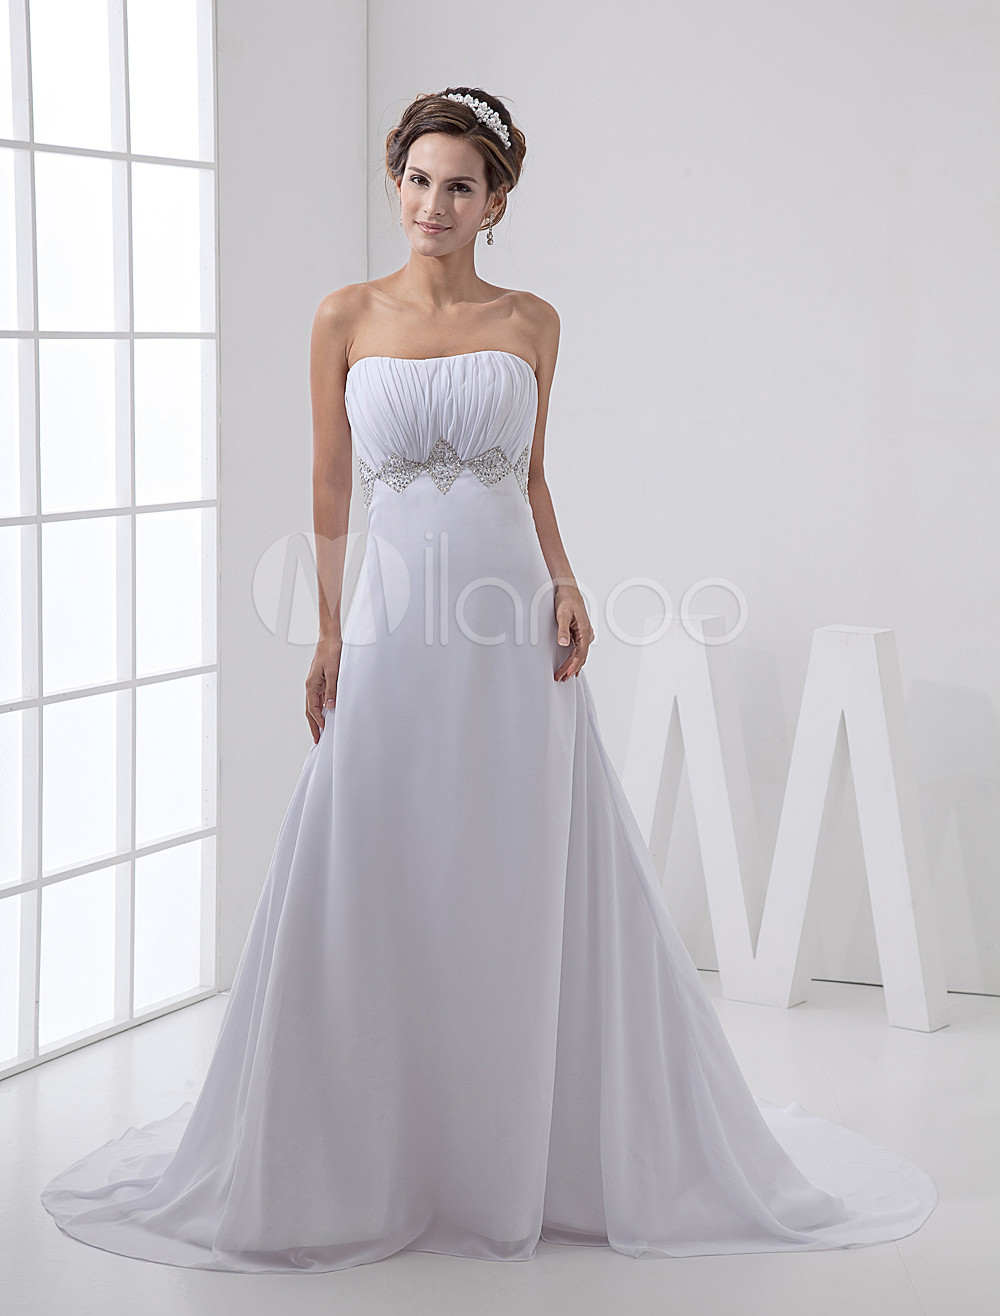 Exquisite White Satin And Chiffon Strapless Empire Waist Wedding Dress